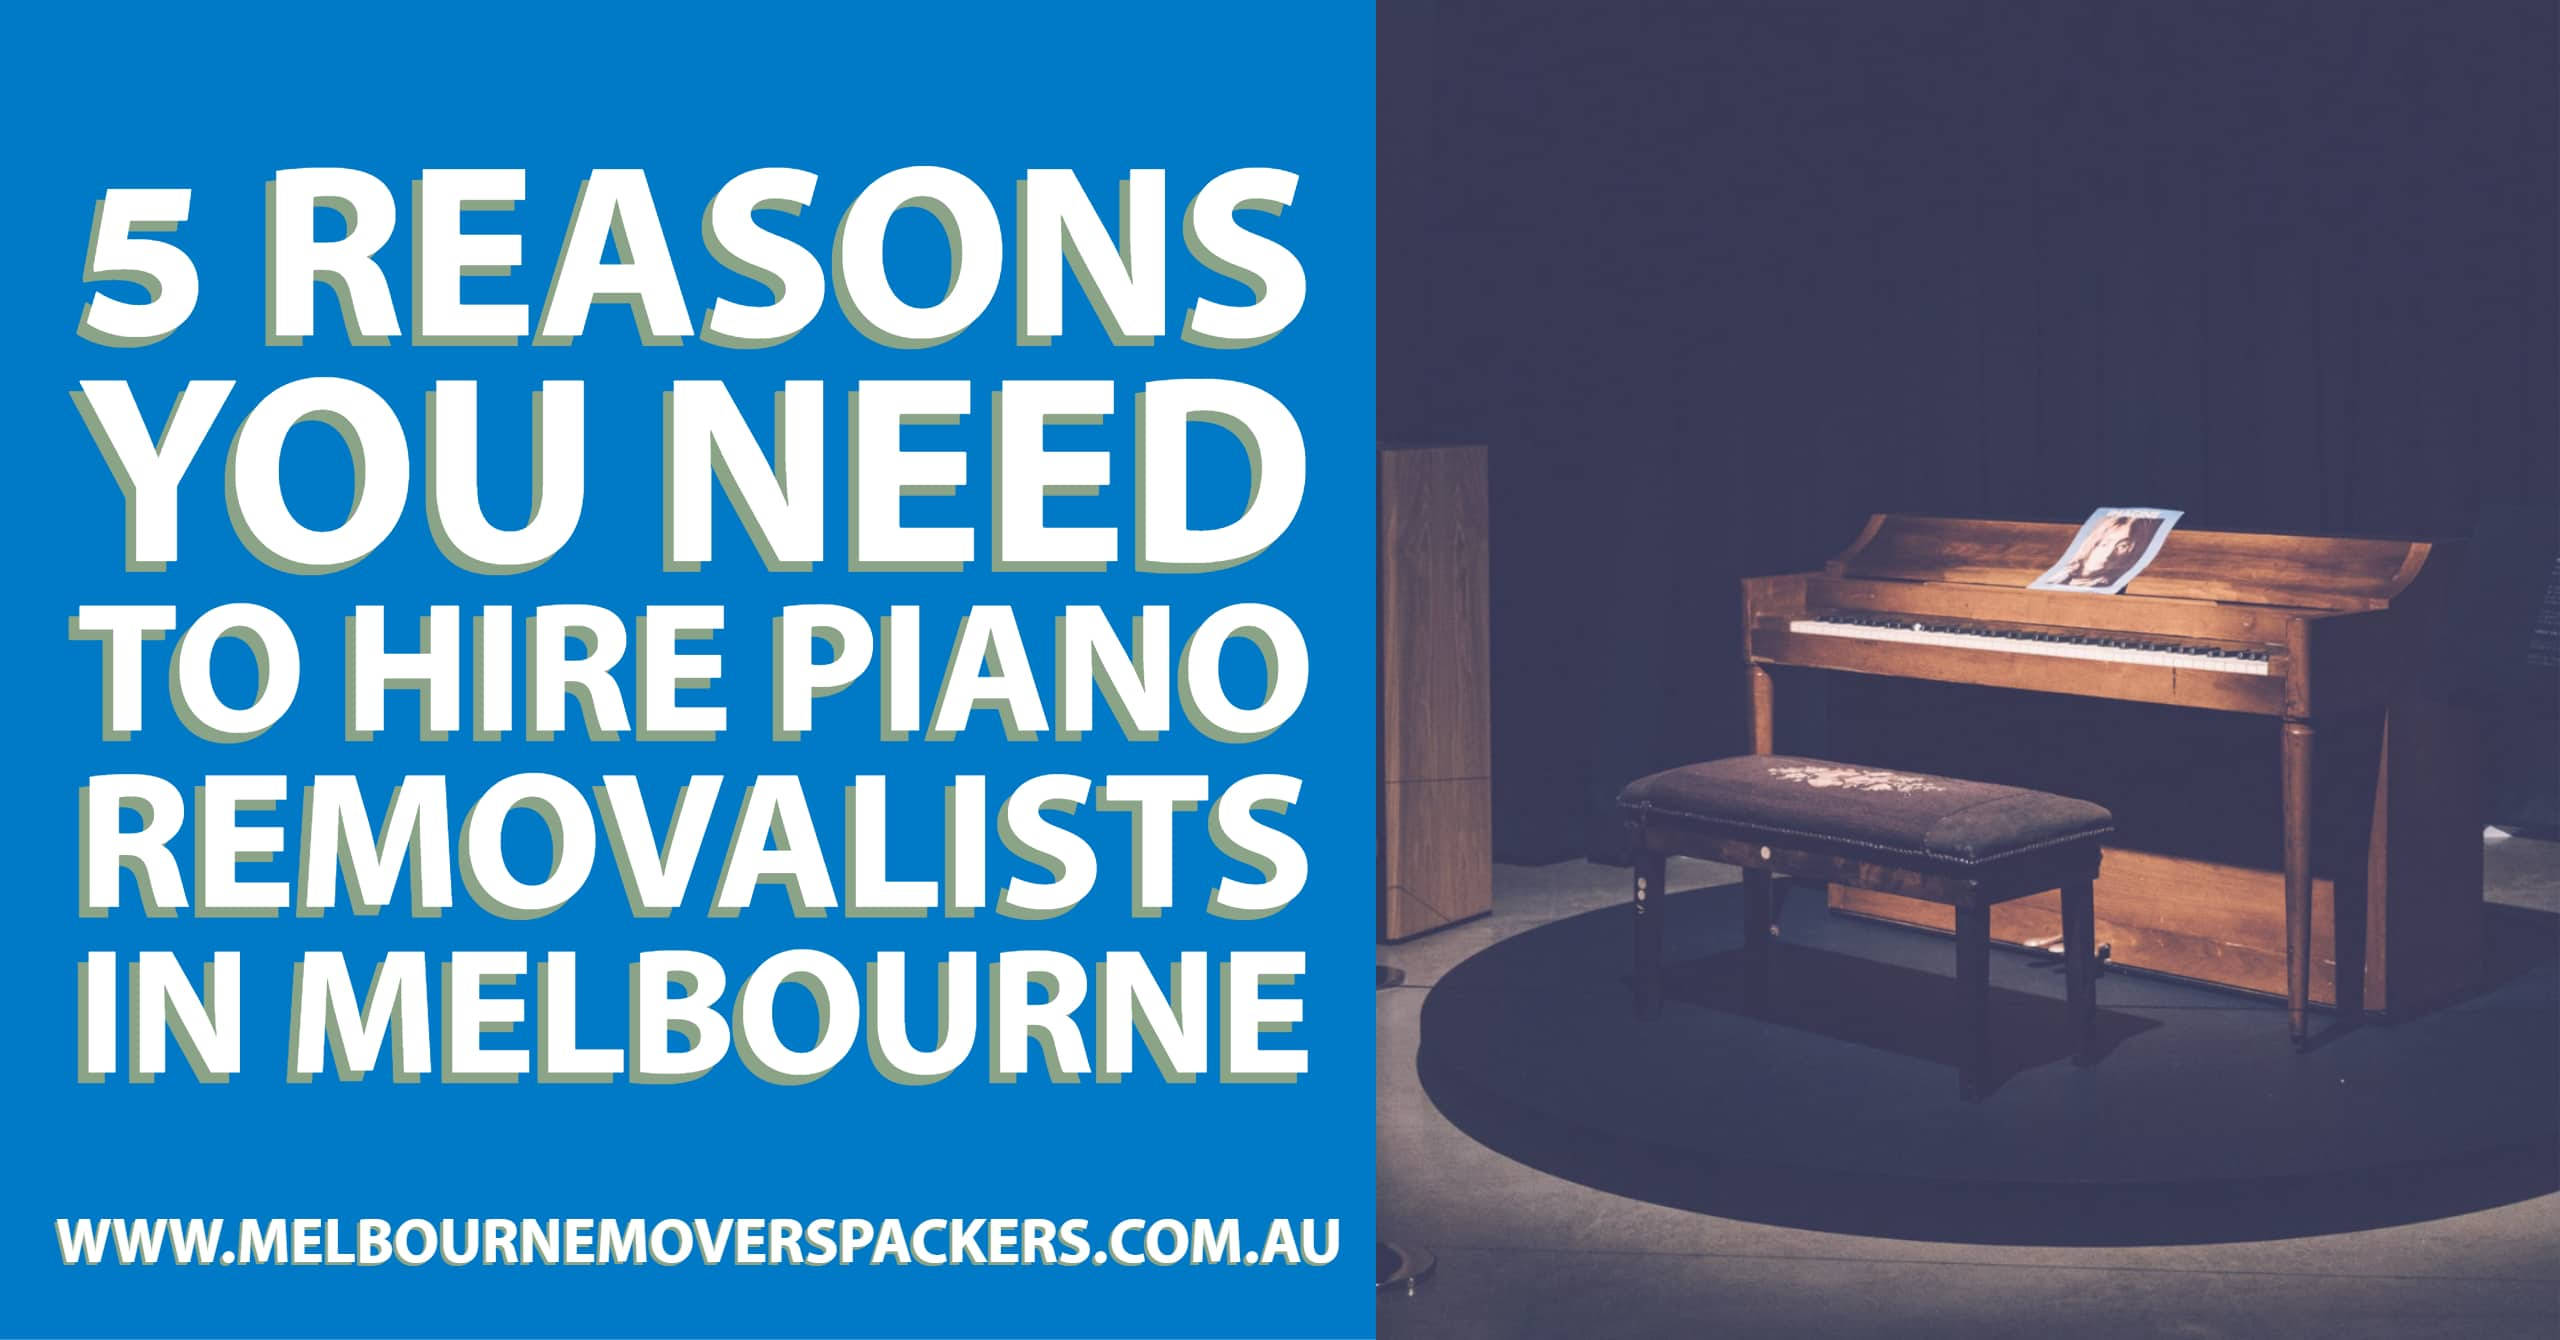 5 Reasons You Need to Hire Piano Removalists in Melbourne 1